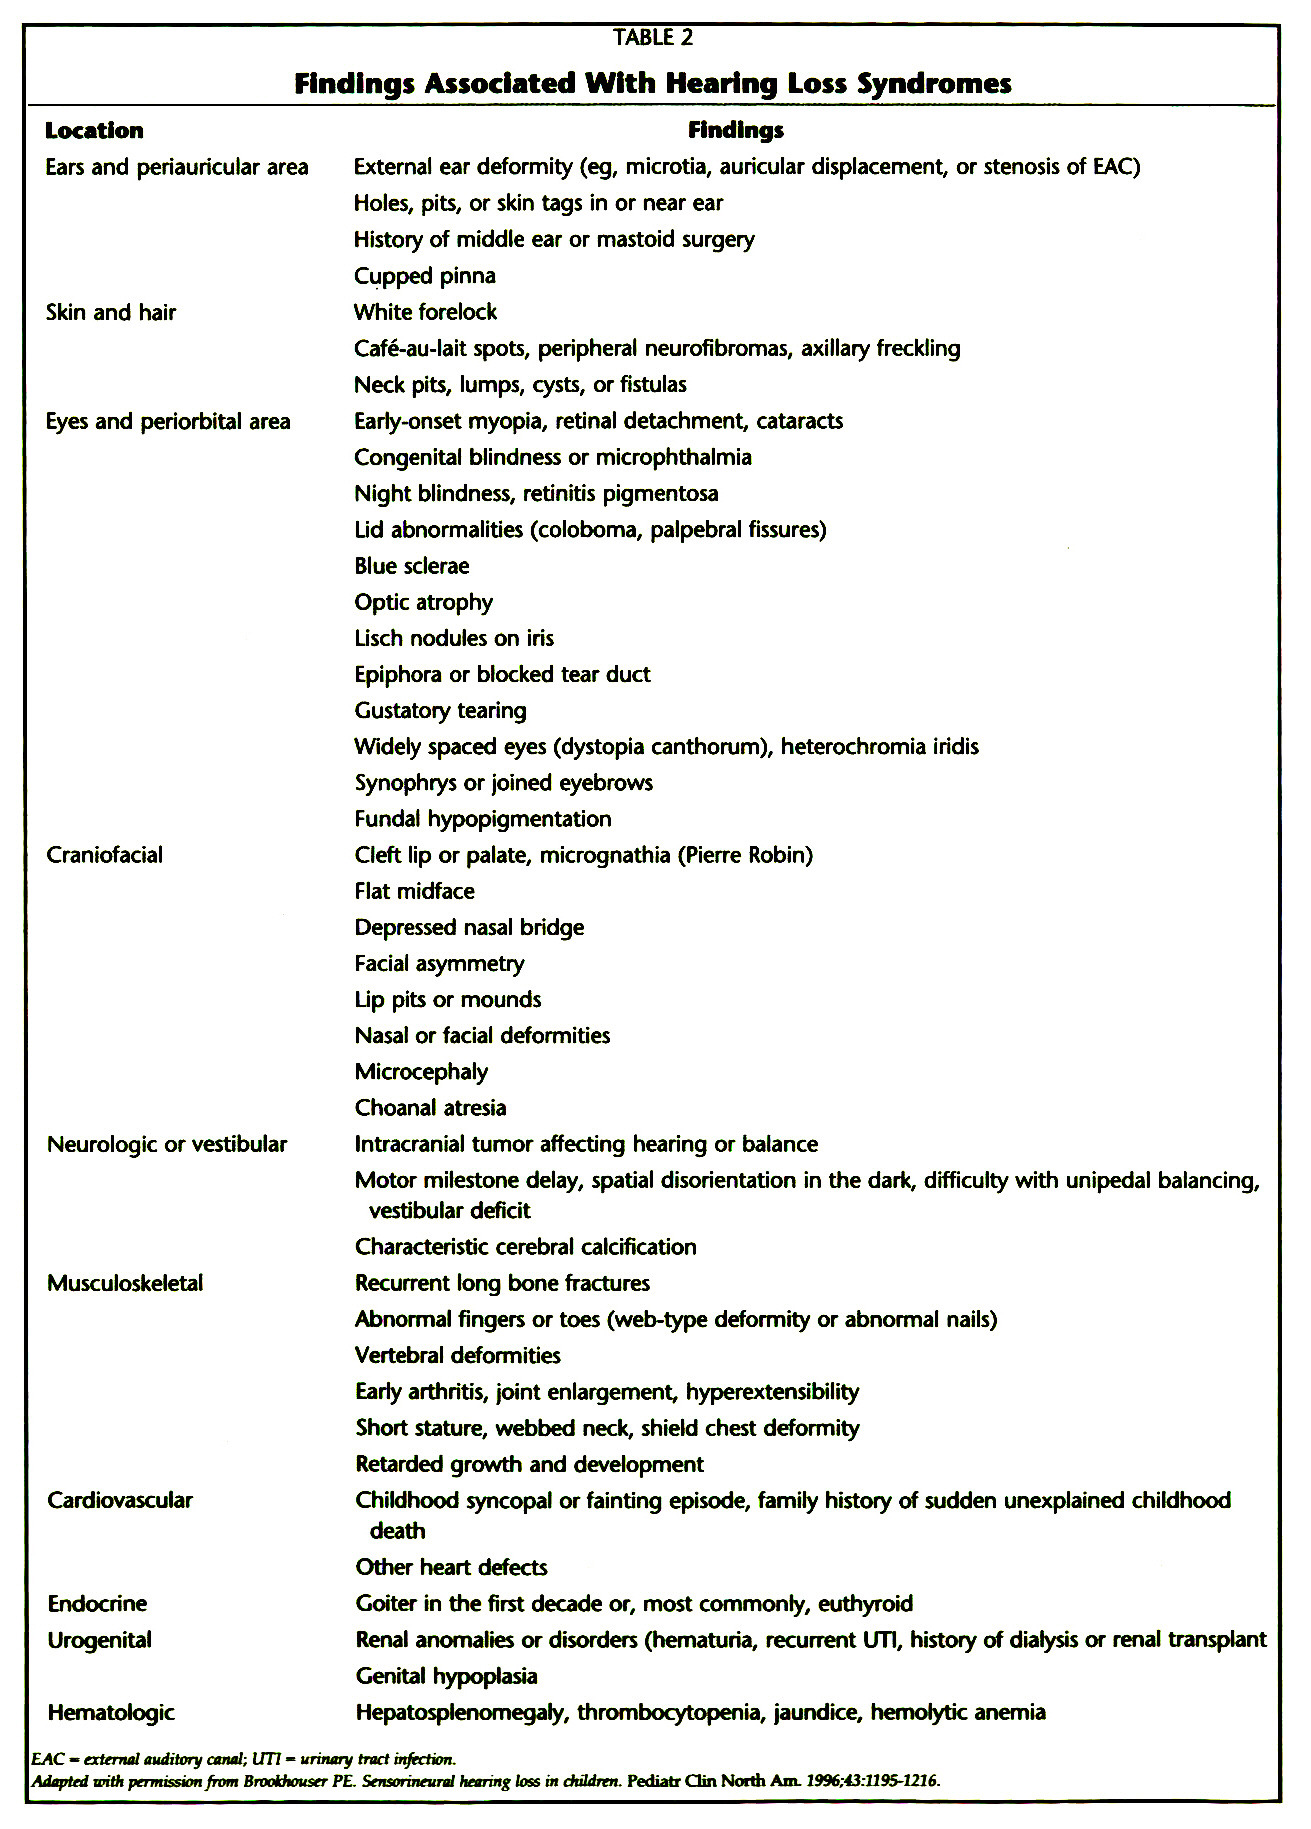 TABLE 2Findings Associated With Hearing Loss Syndromes